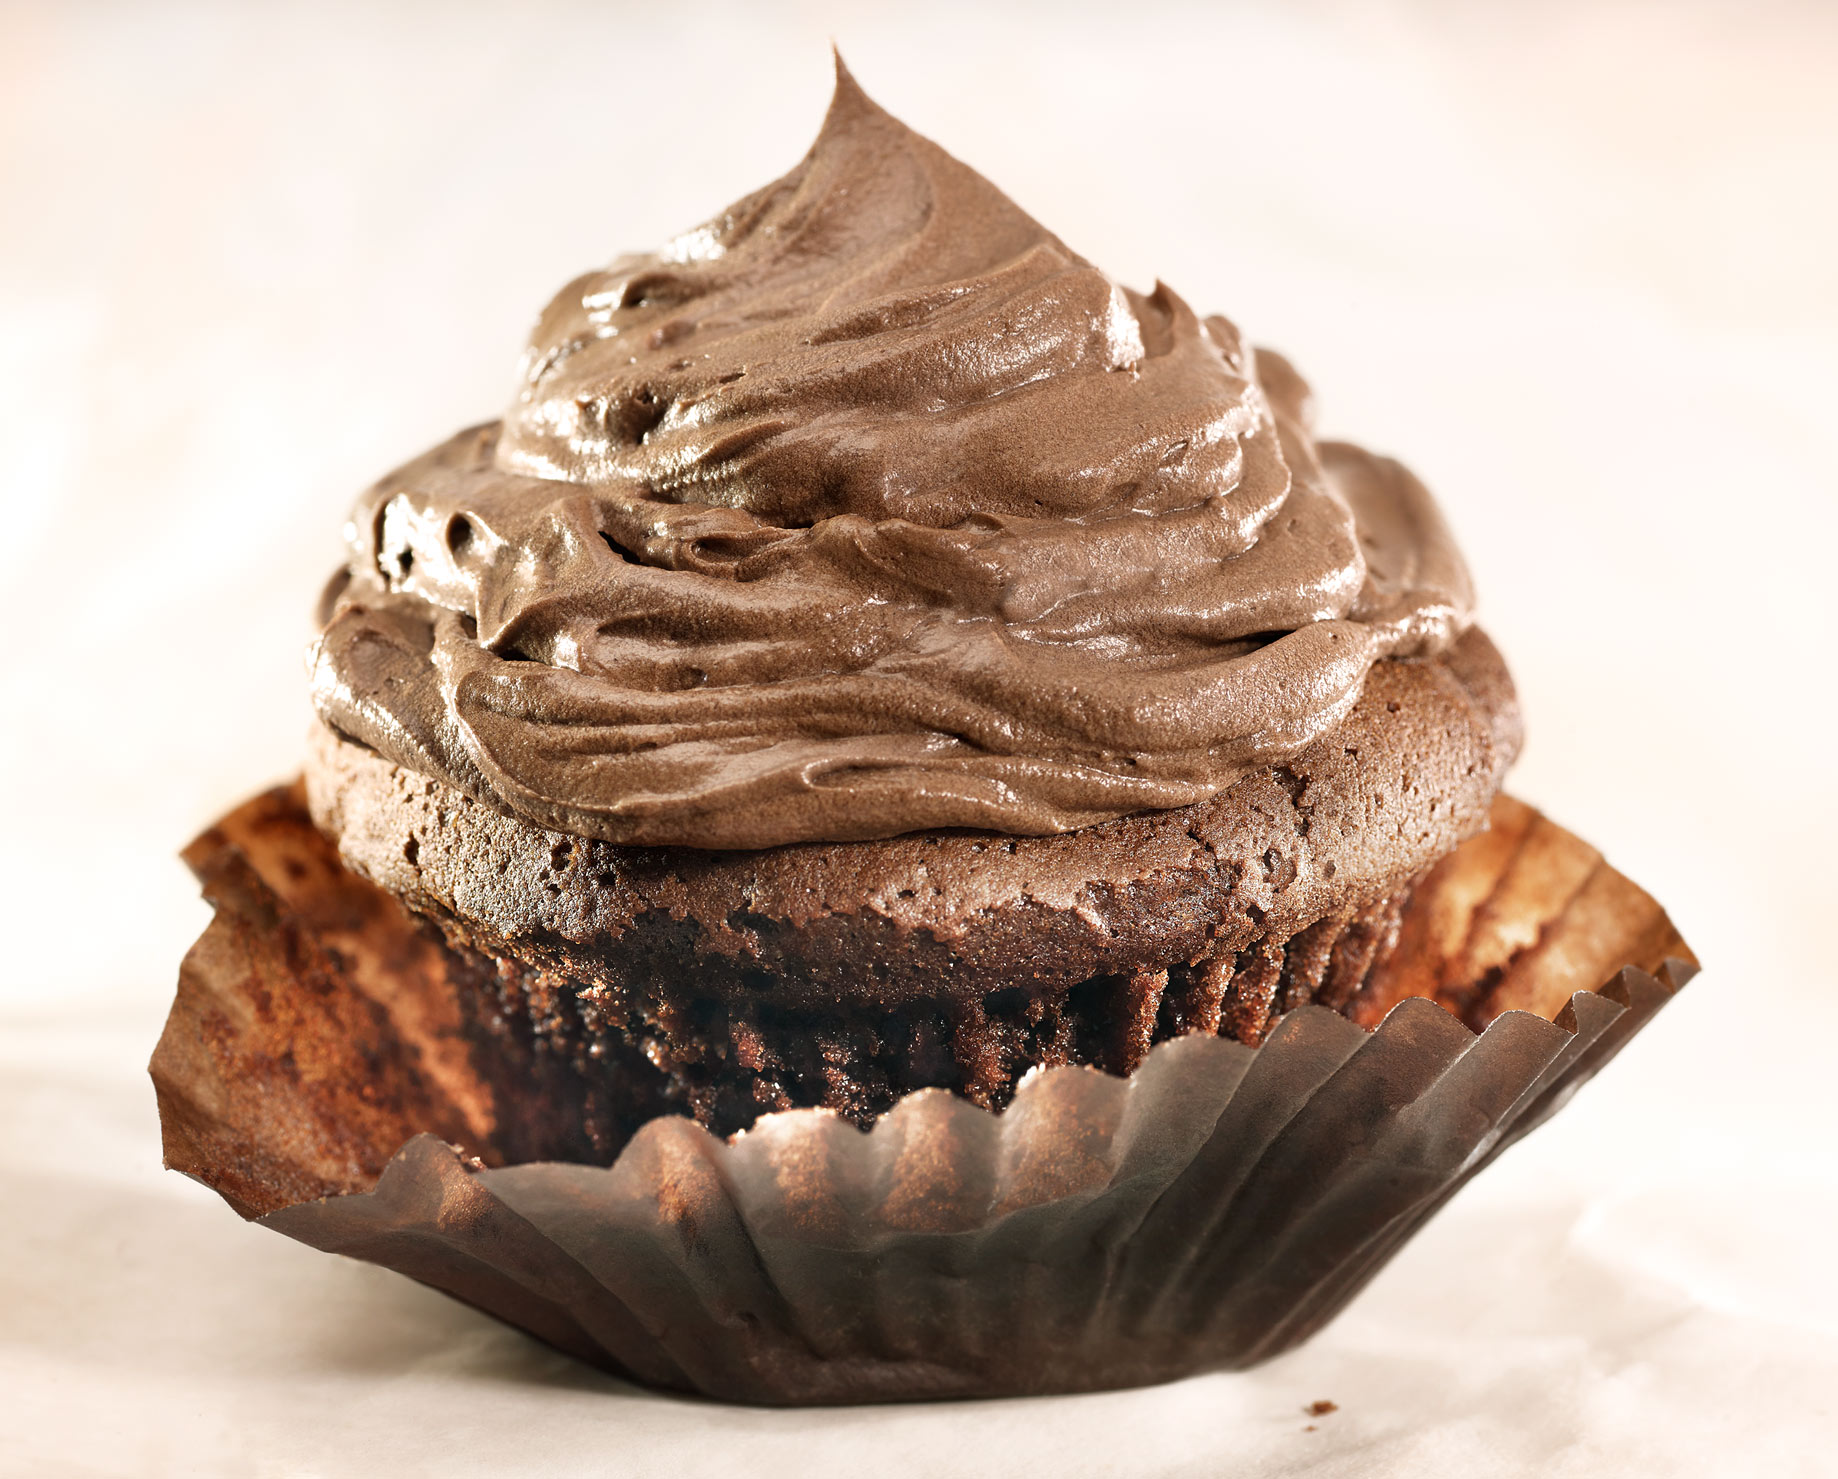 Chocolate-Cupcake-with-Frosting.jpg